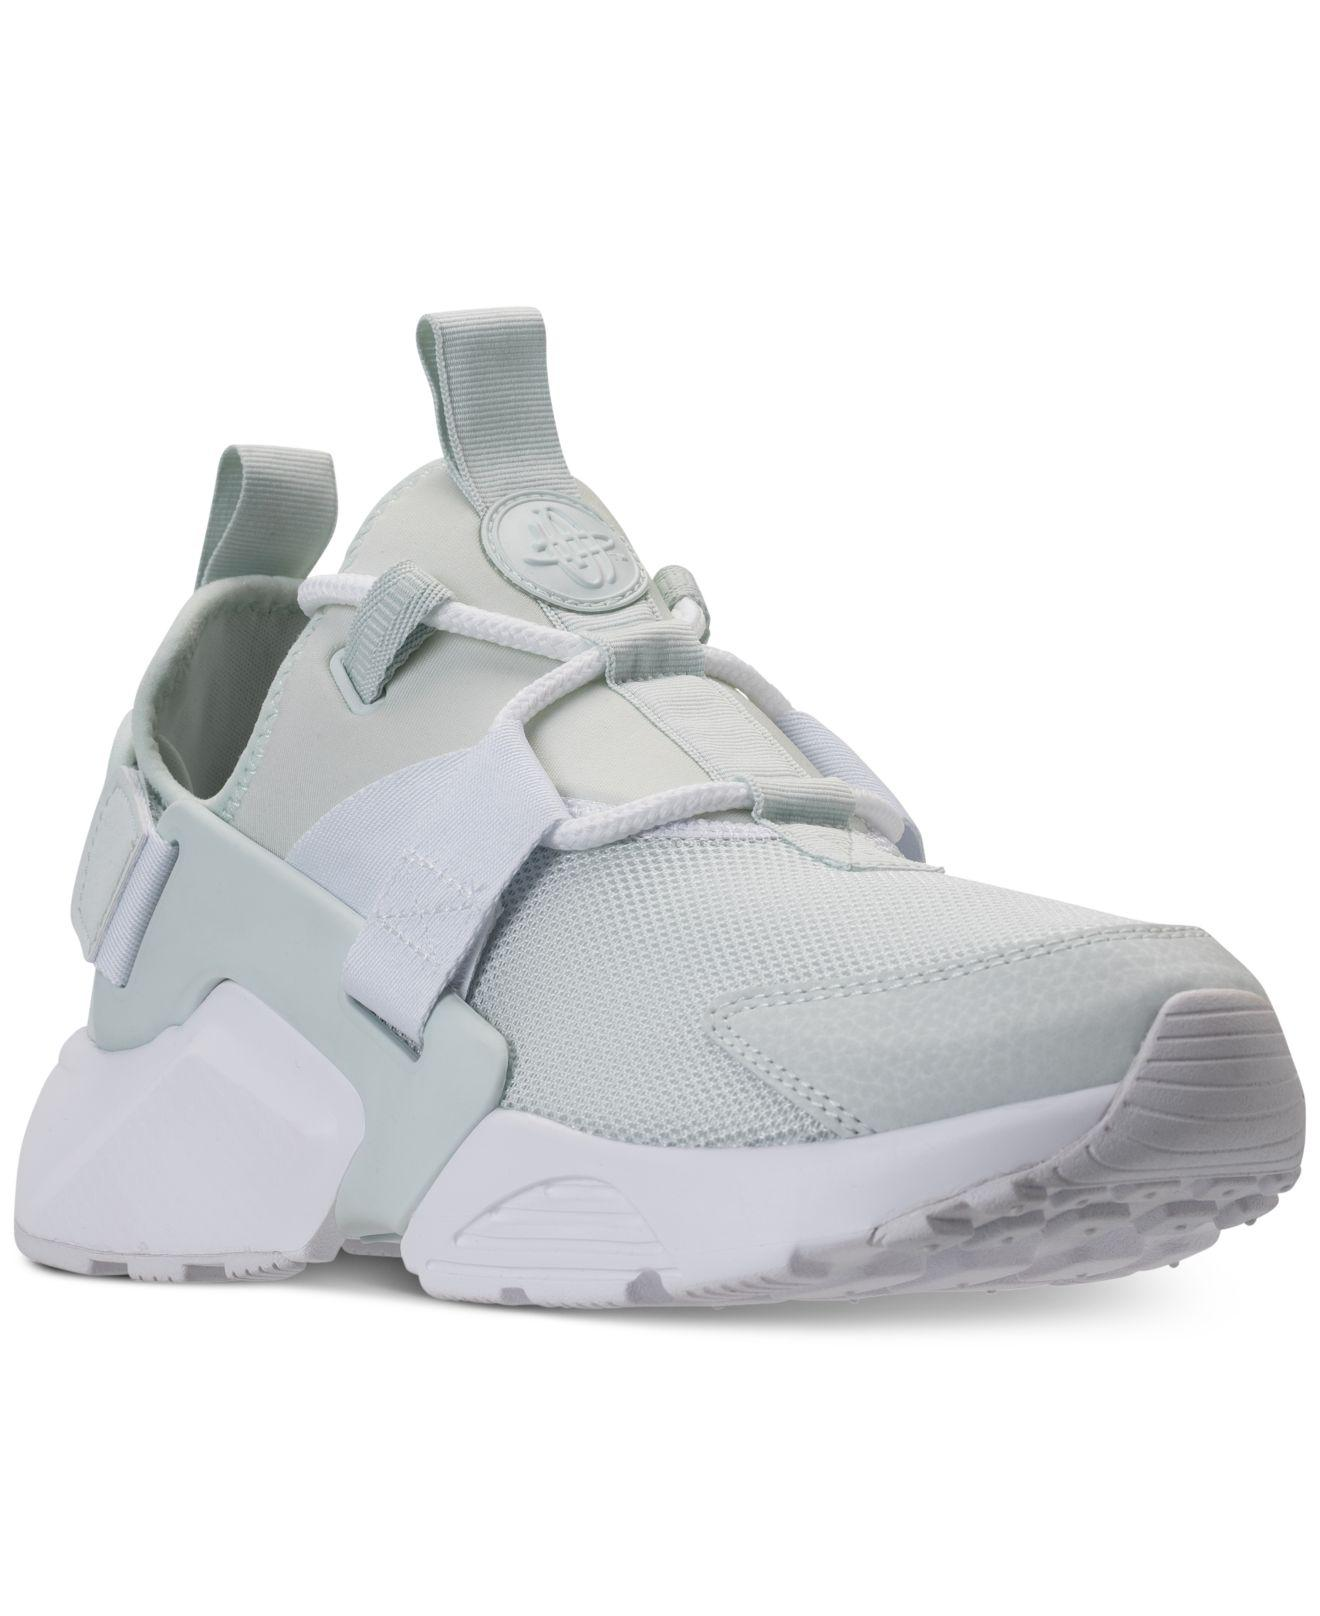 6dcfd0e0b9a48 Lyst - Nike Air Huarache City Low Casual Sneakers From Finish Line ...